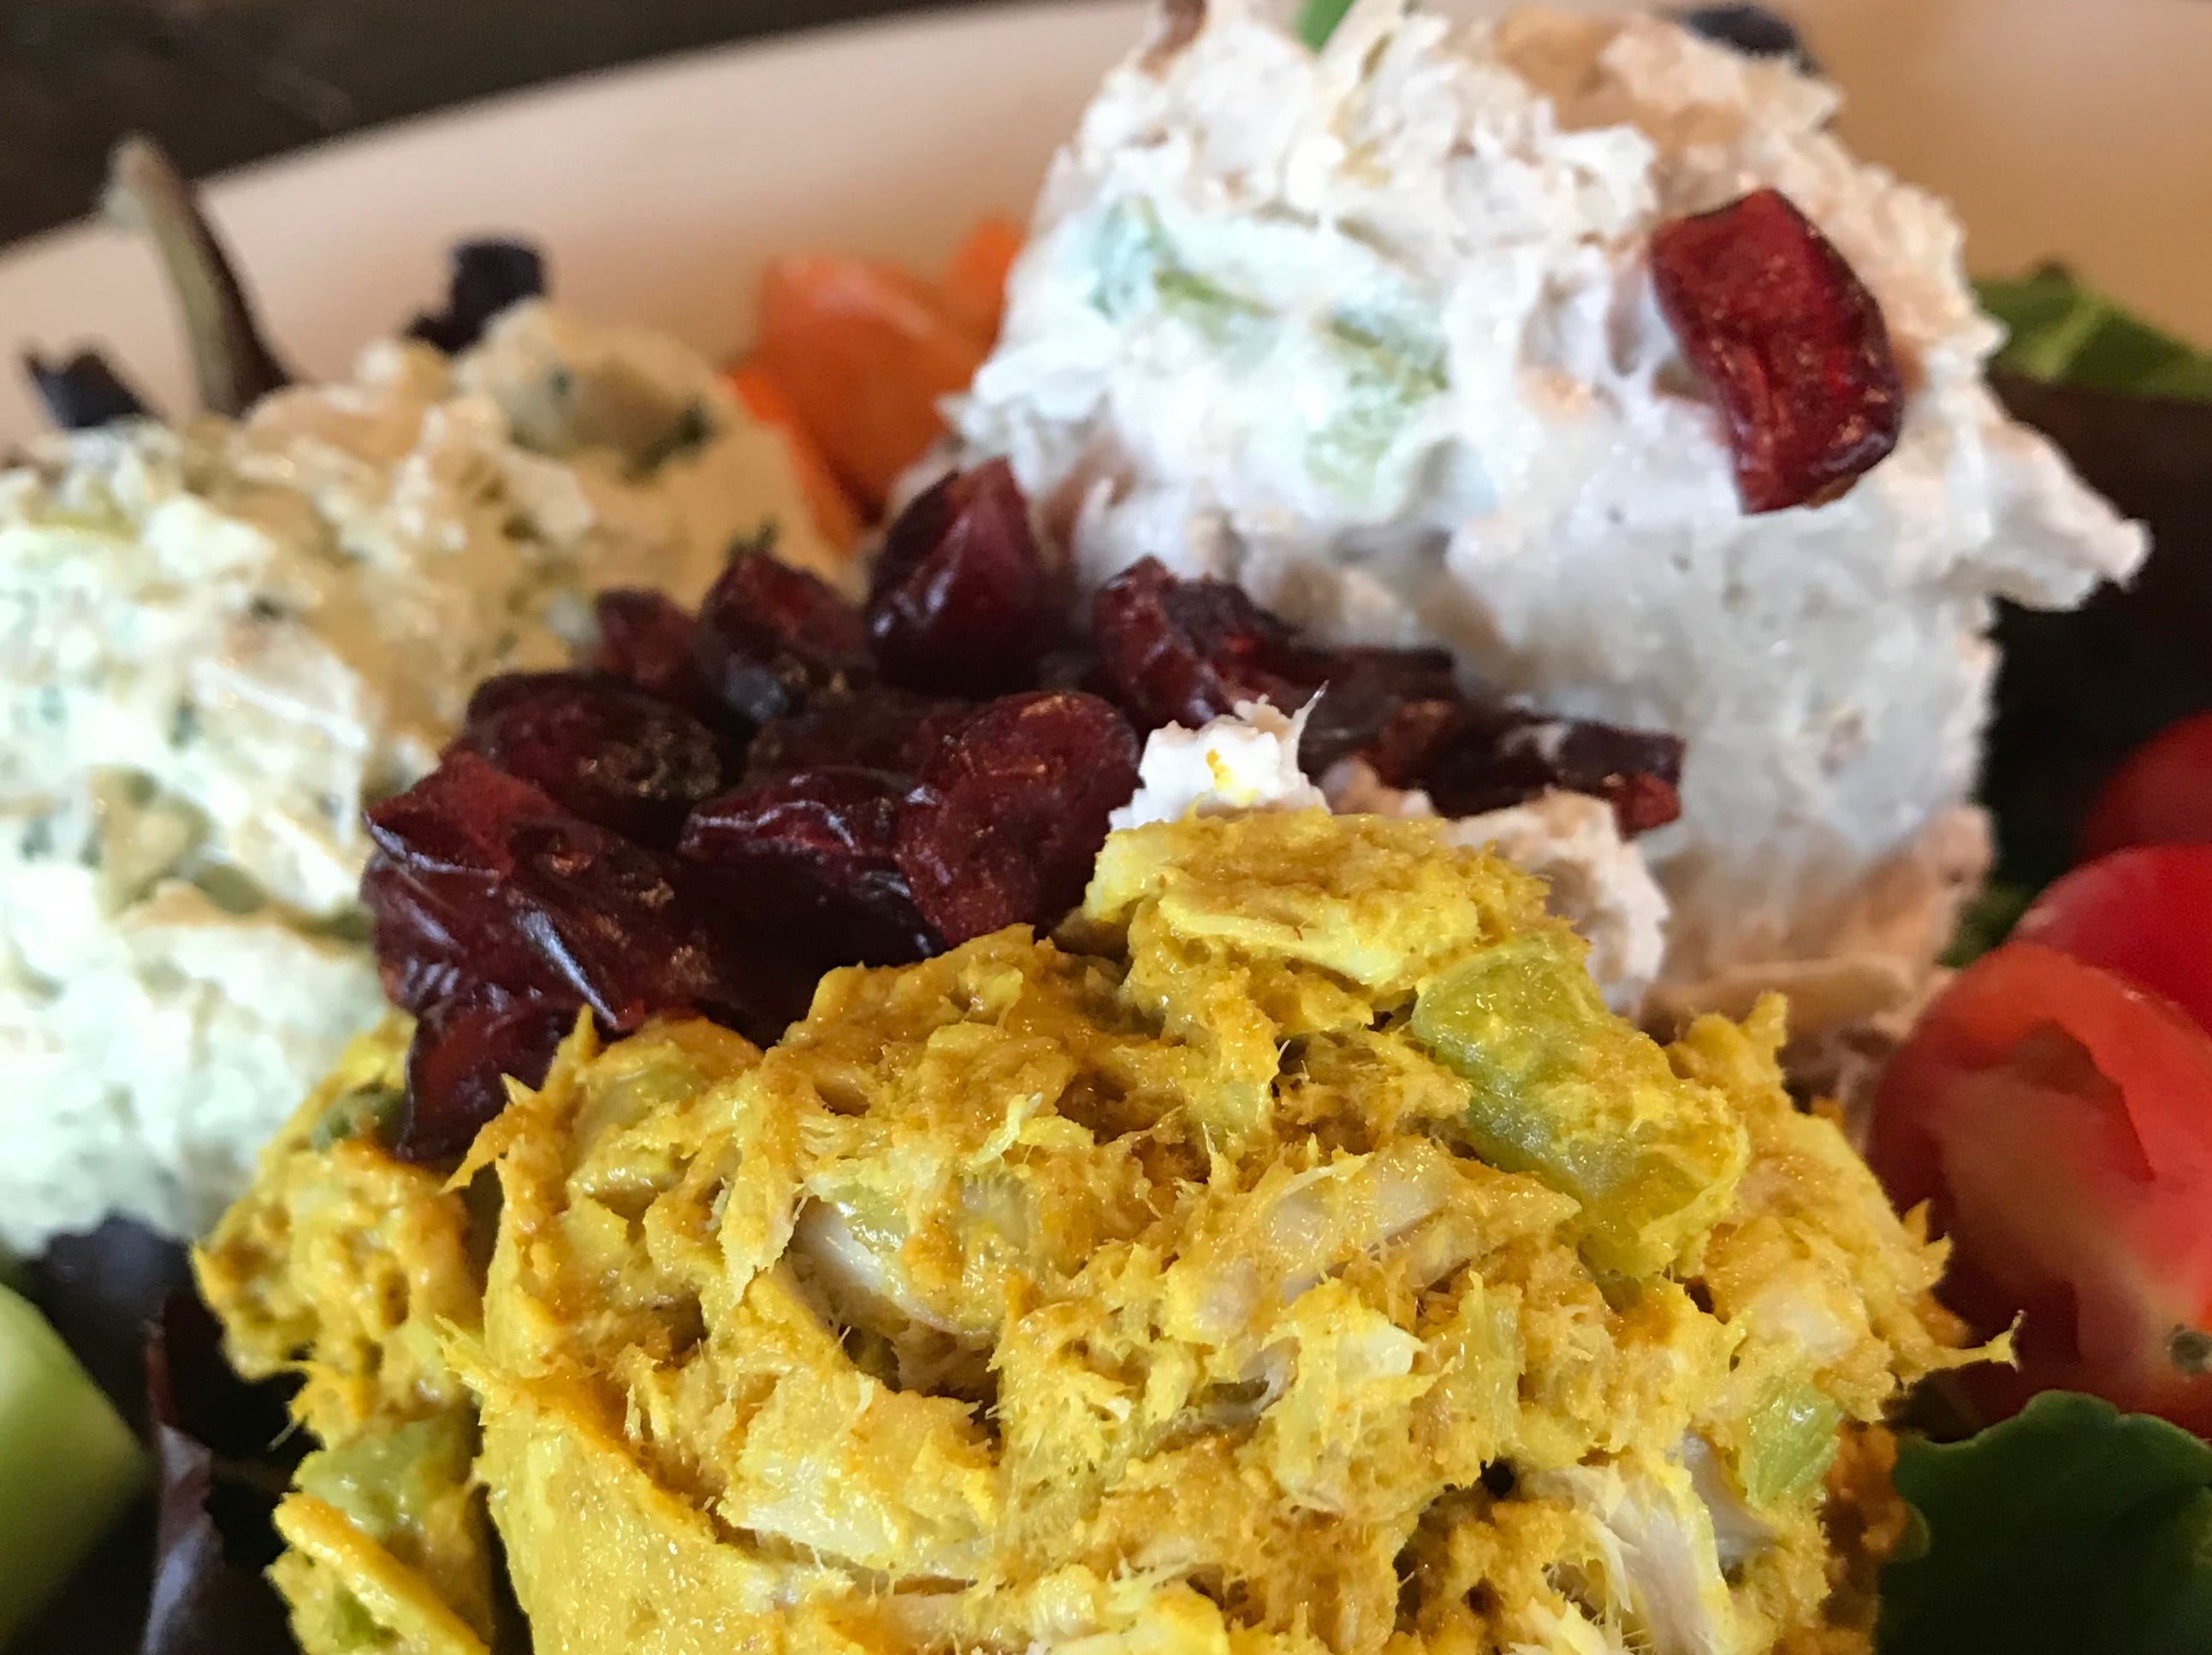 Curried chicken salad has been on Zuppas menu since it opened in 1999 and remains one of the most popular items. It starts with roasted curry spices and gets a touch of hone to round out the flavors.